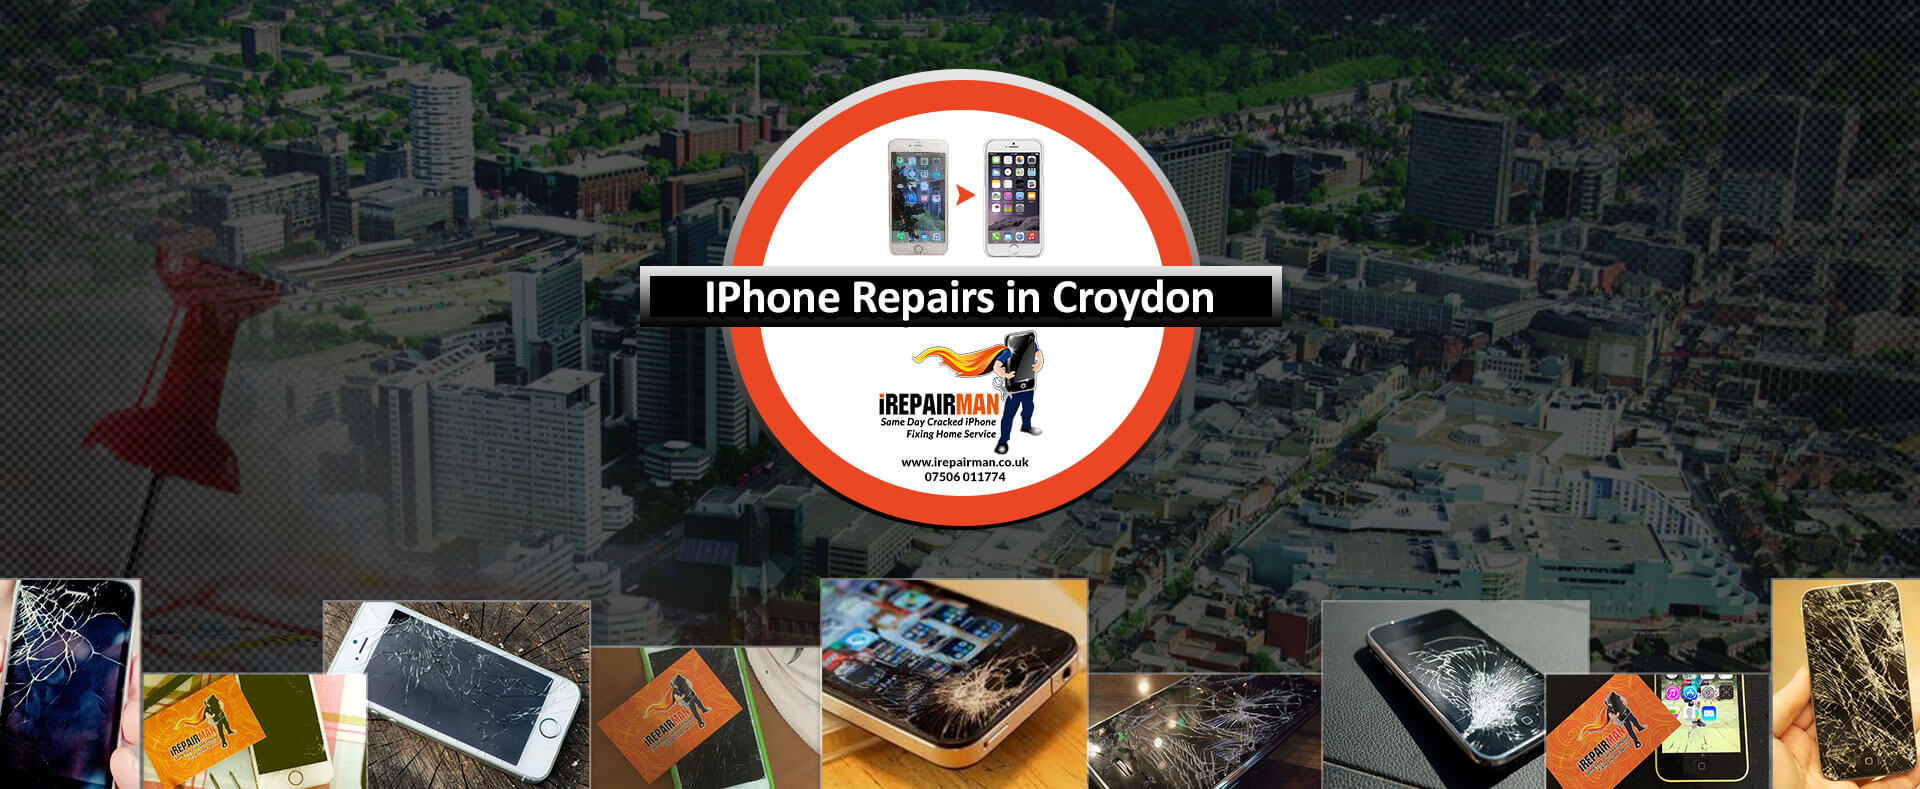 iPhone Repairs in Croydon